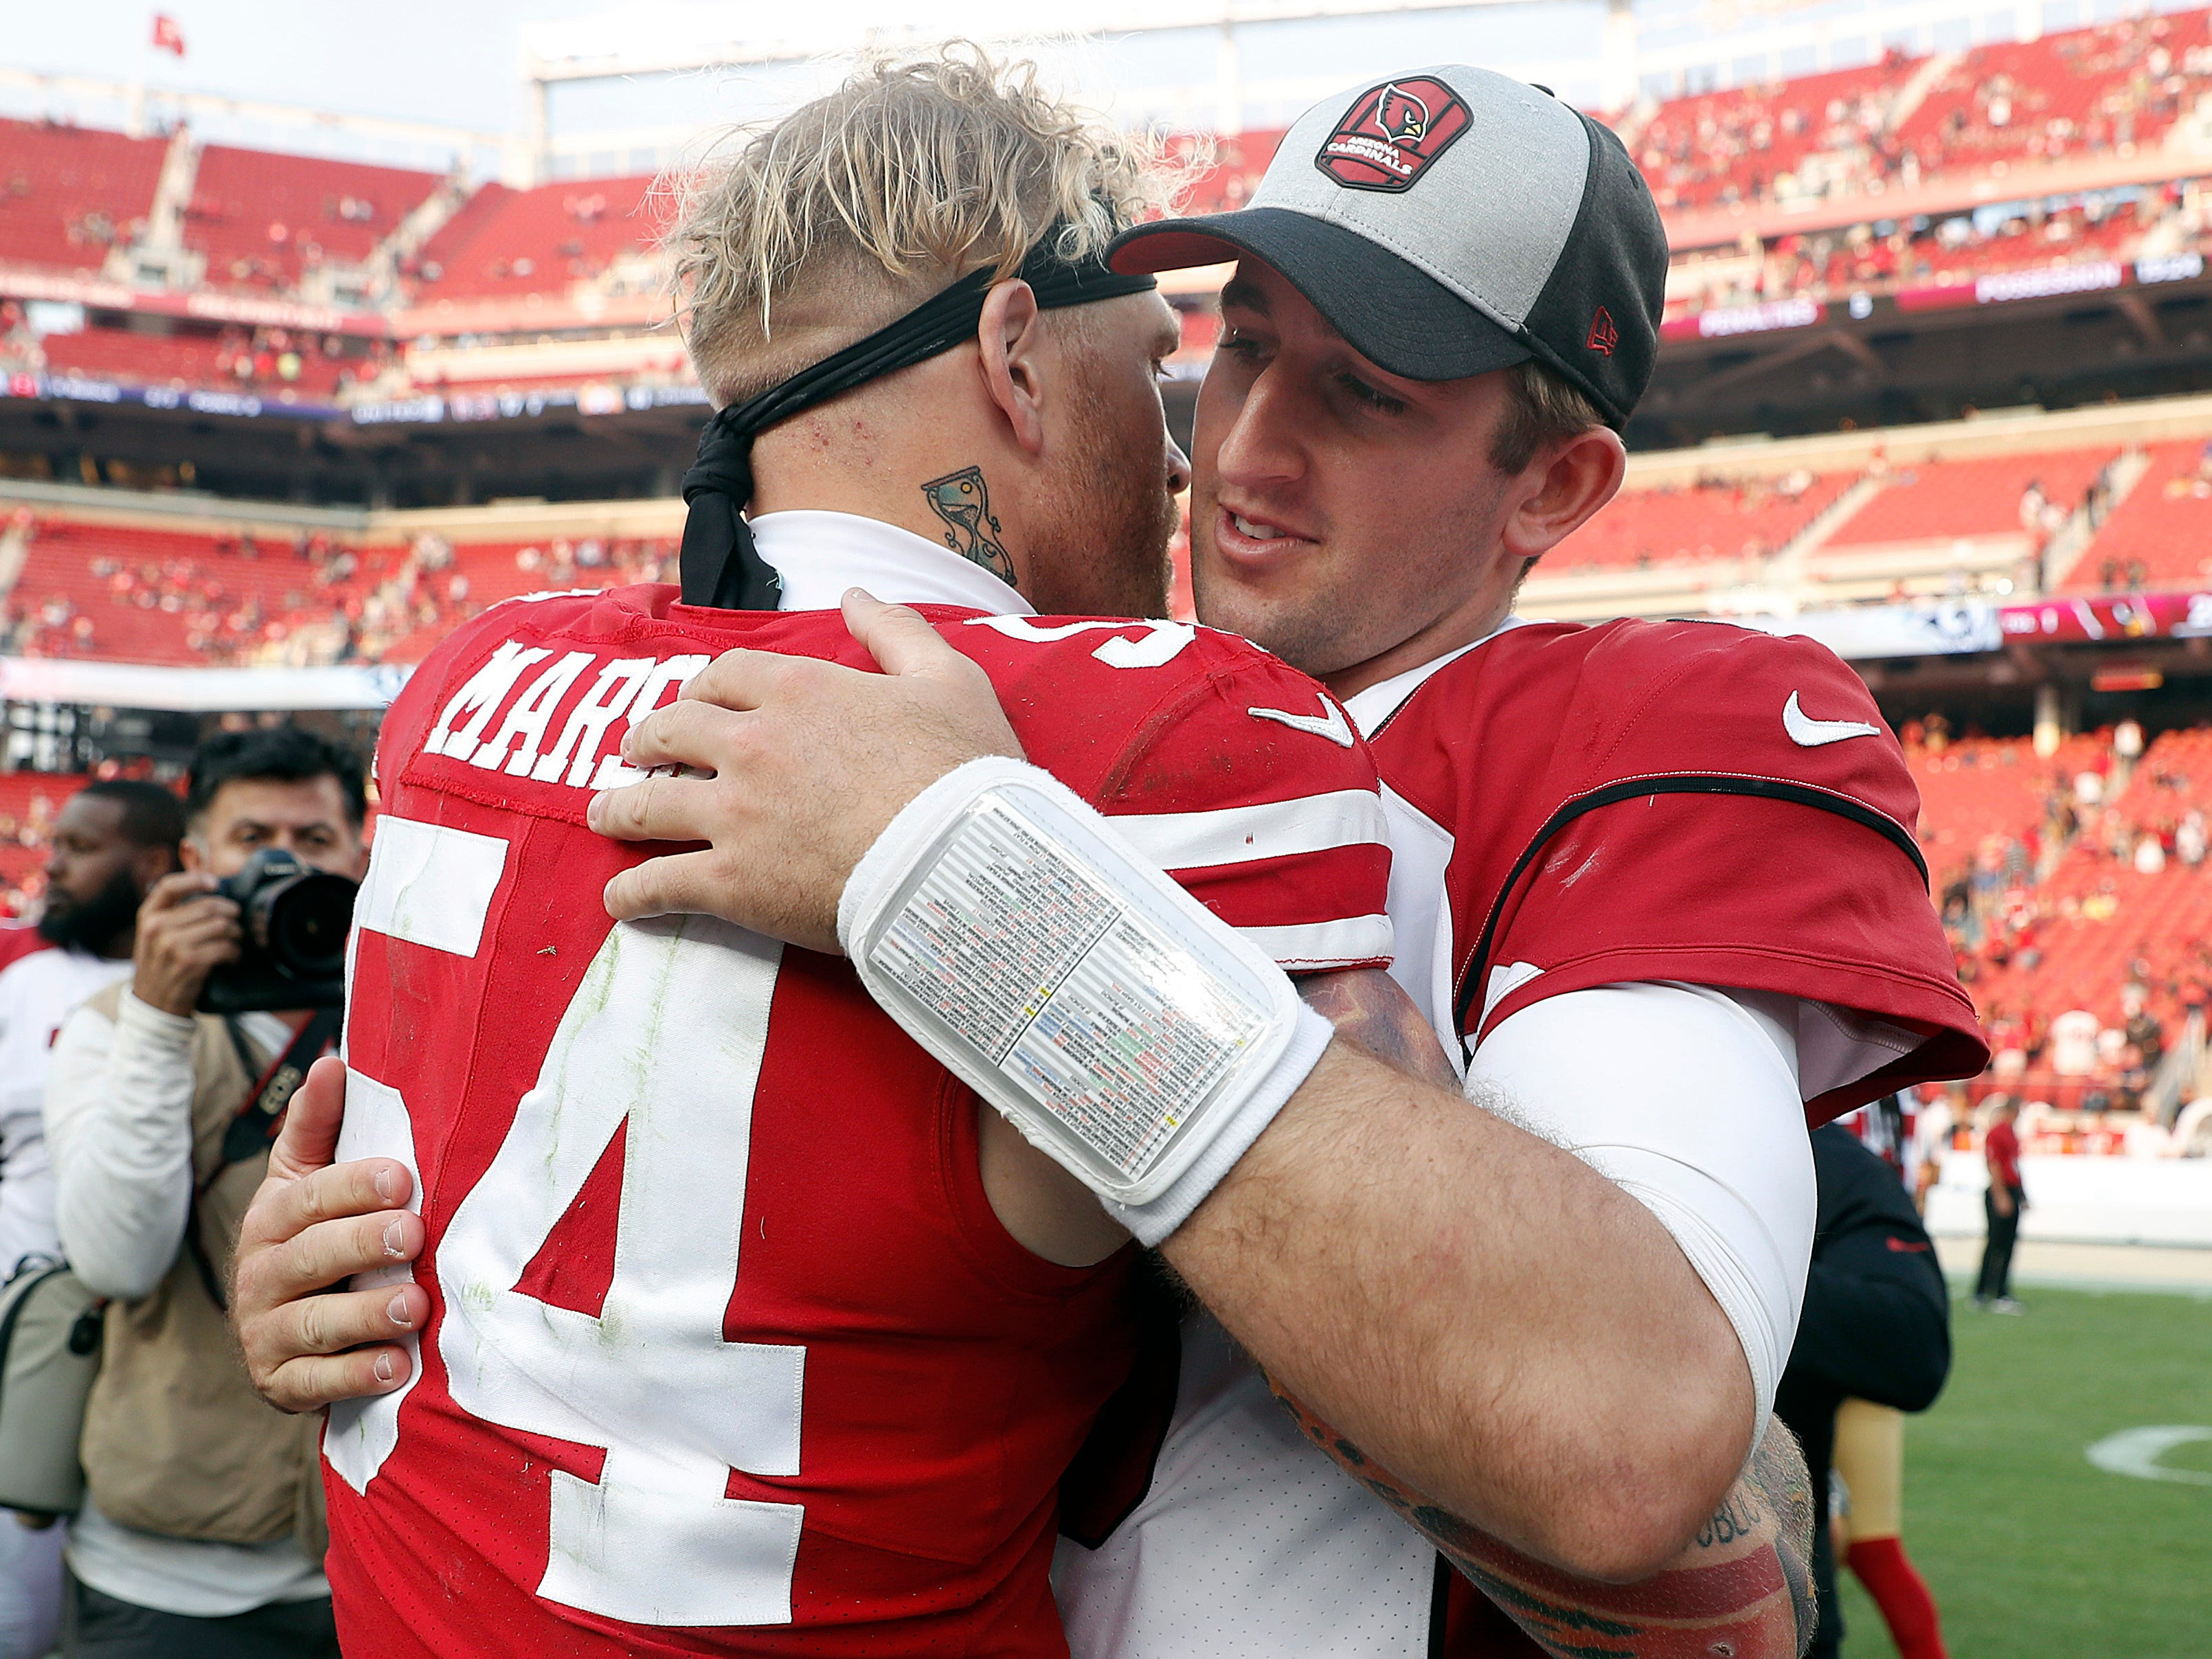 Arizona Cardinals quarterback Josh Rosen, right, hugs San Francisco 49ers defensive end Cassius Marsh after an NFL football game in Santa Clara, Calif., Sunday, Oct. 7, 2018.